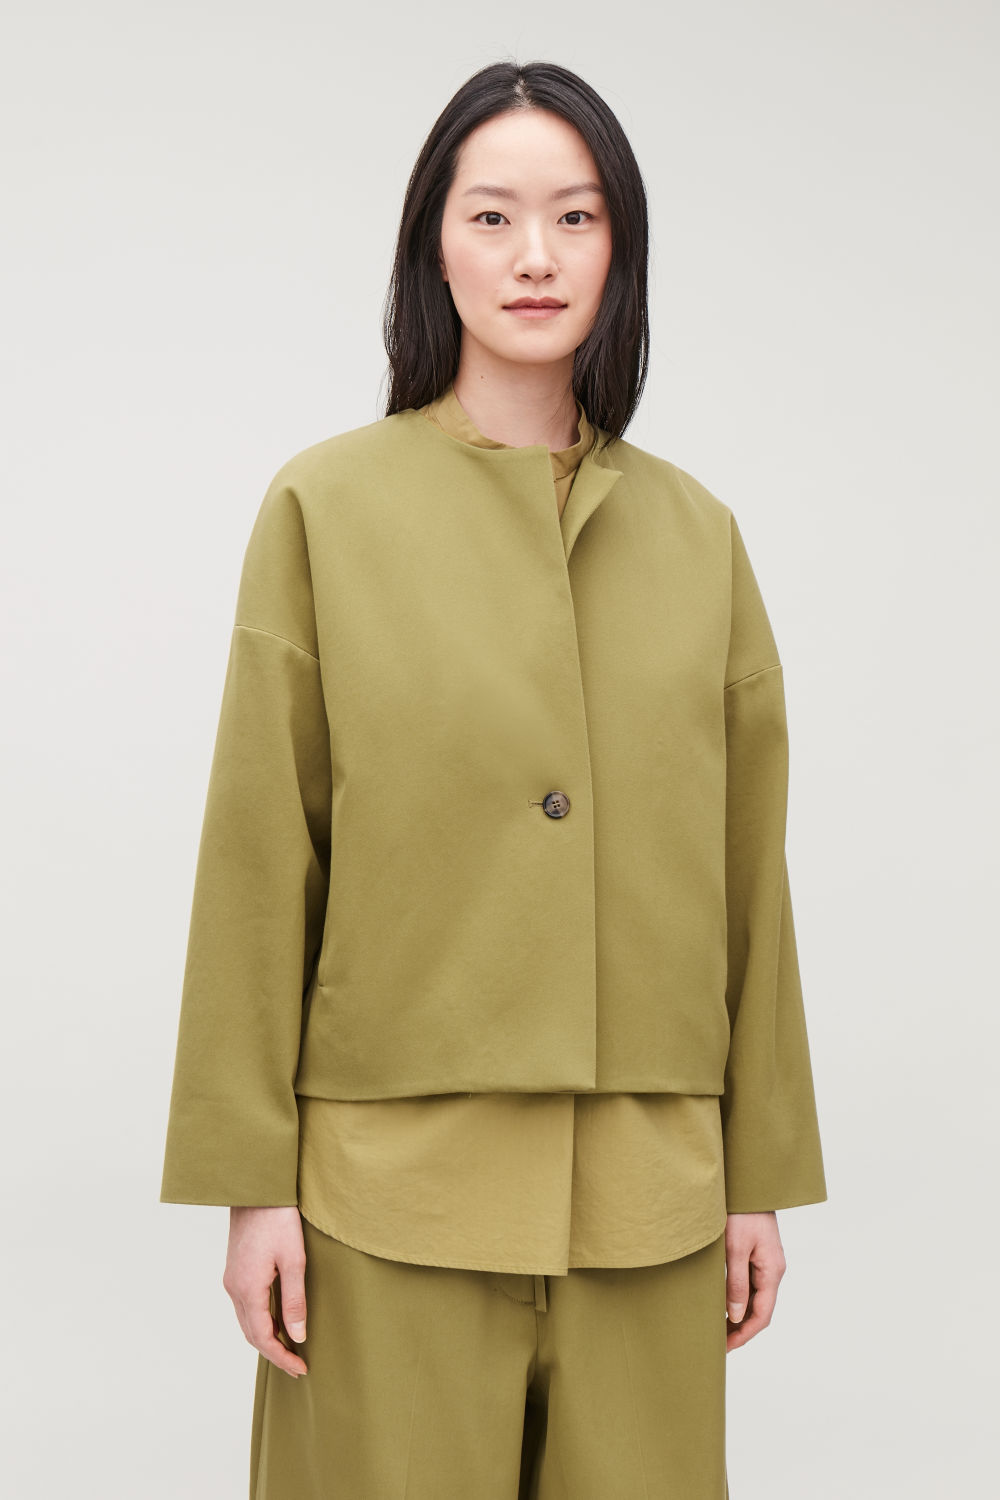 BOXY A-LINE COTTON JACKET